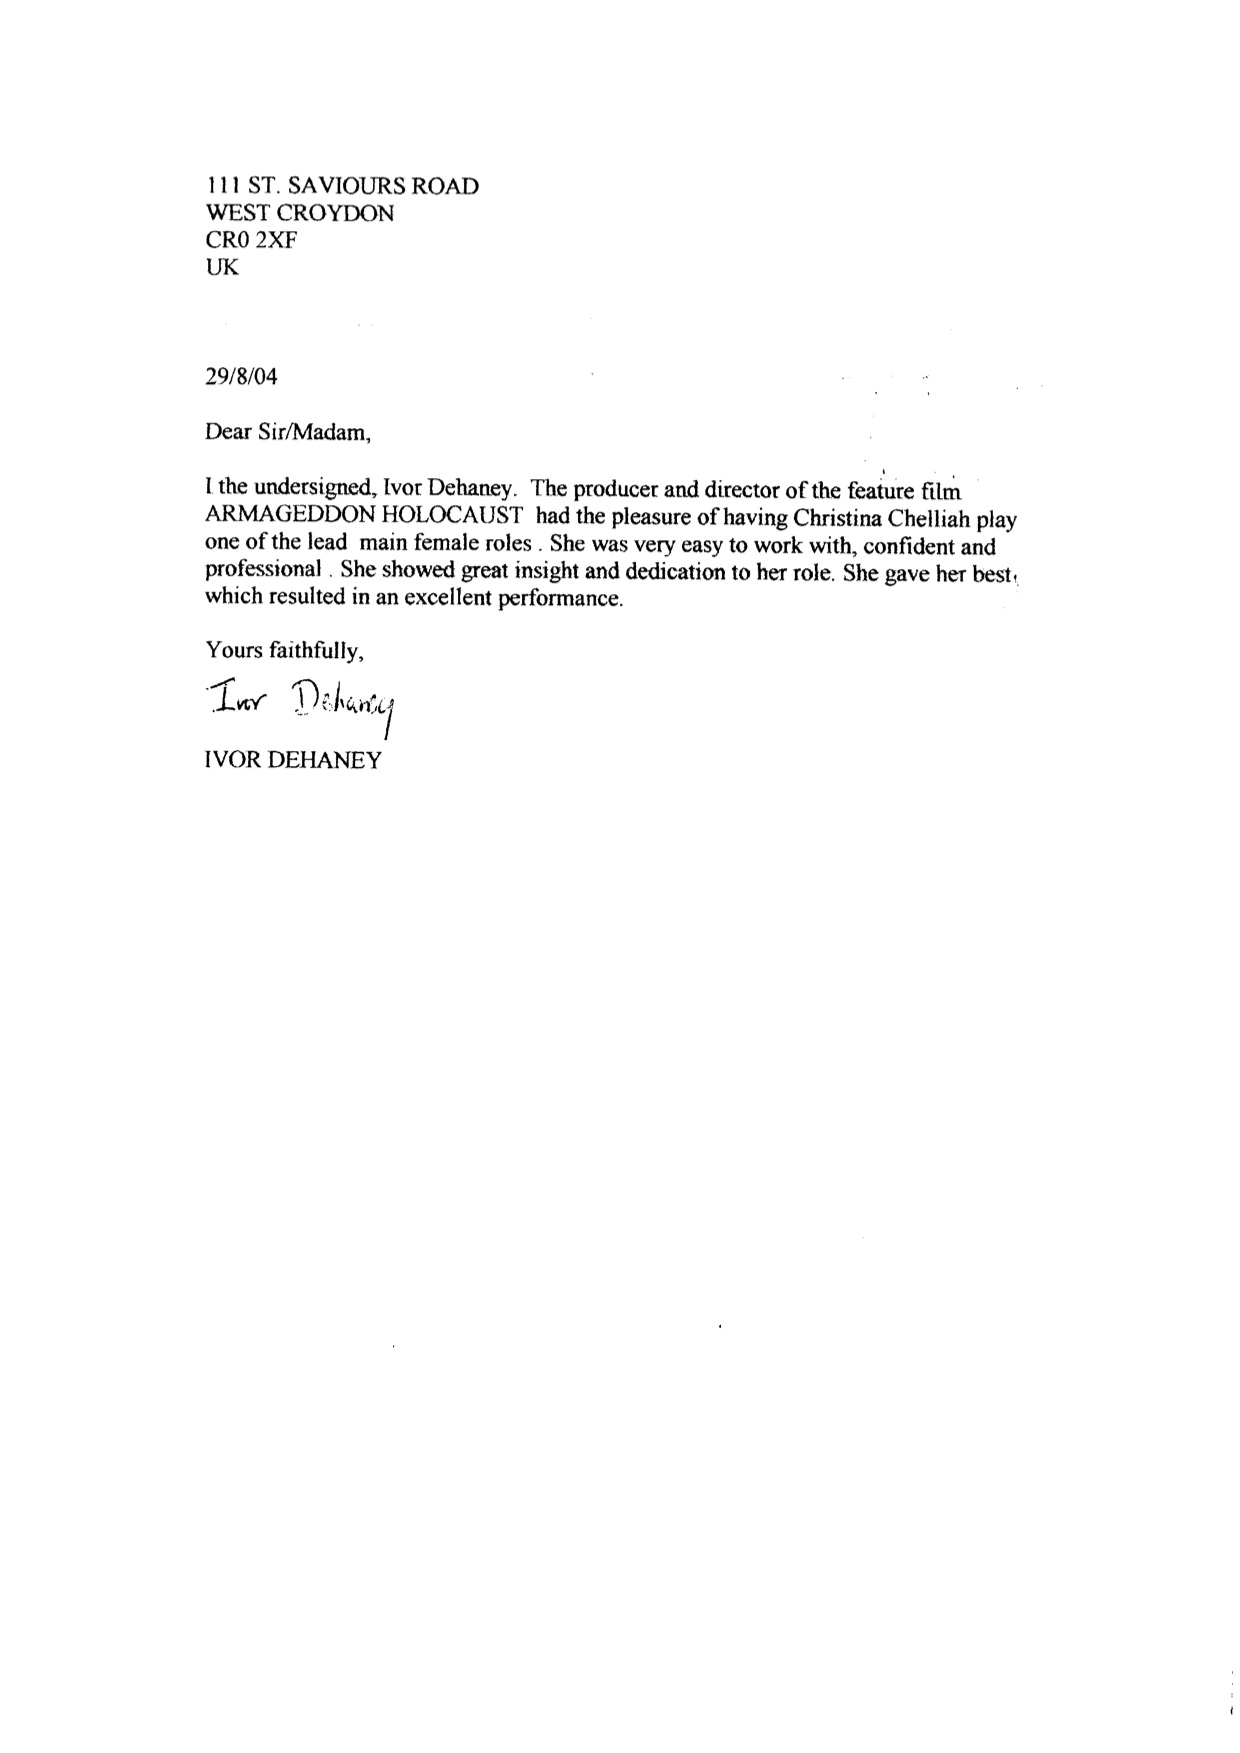 2004 - Acting - Armageddon Holocaust Feature Film - Reference Letter.jpg